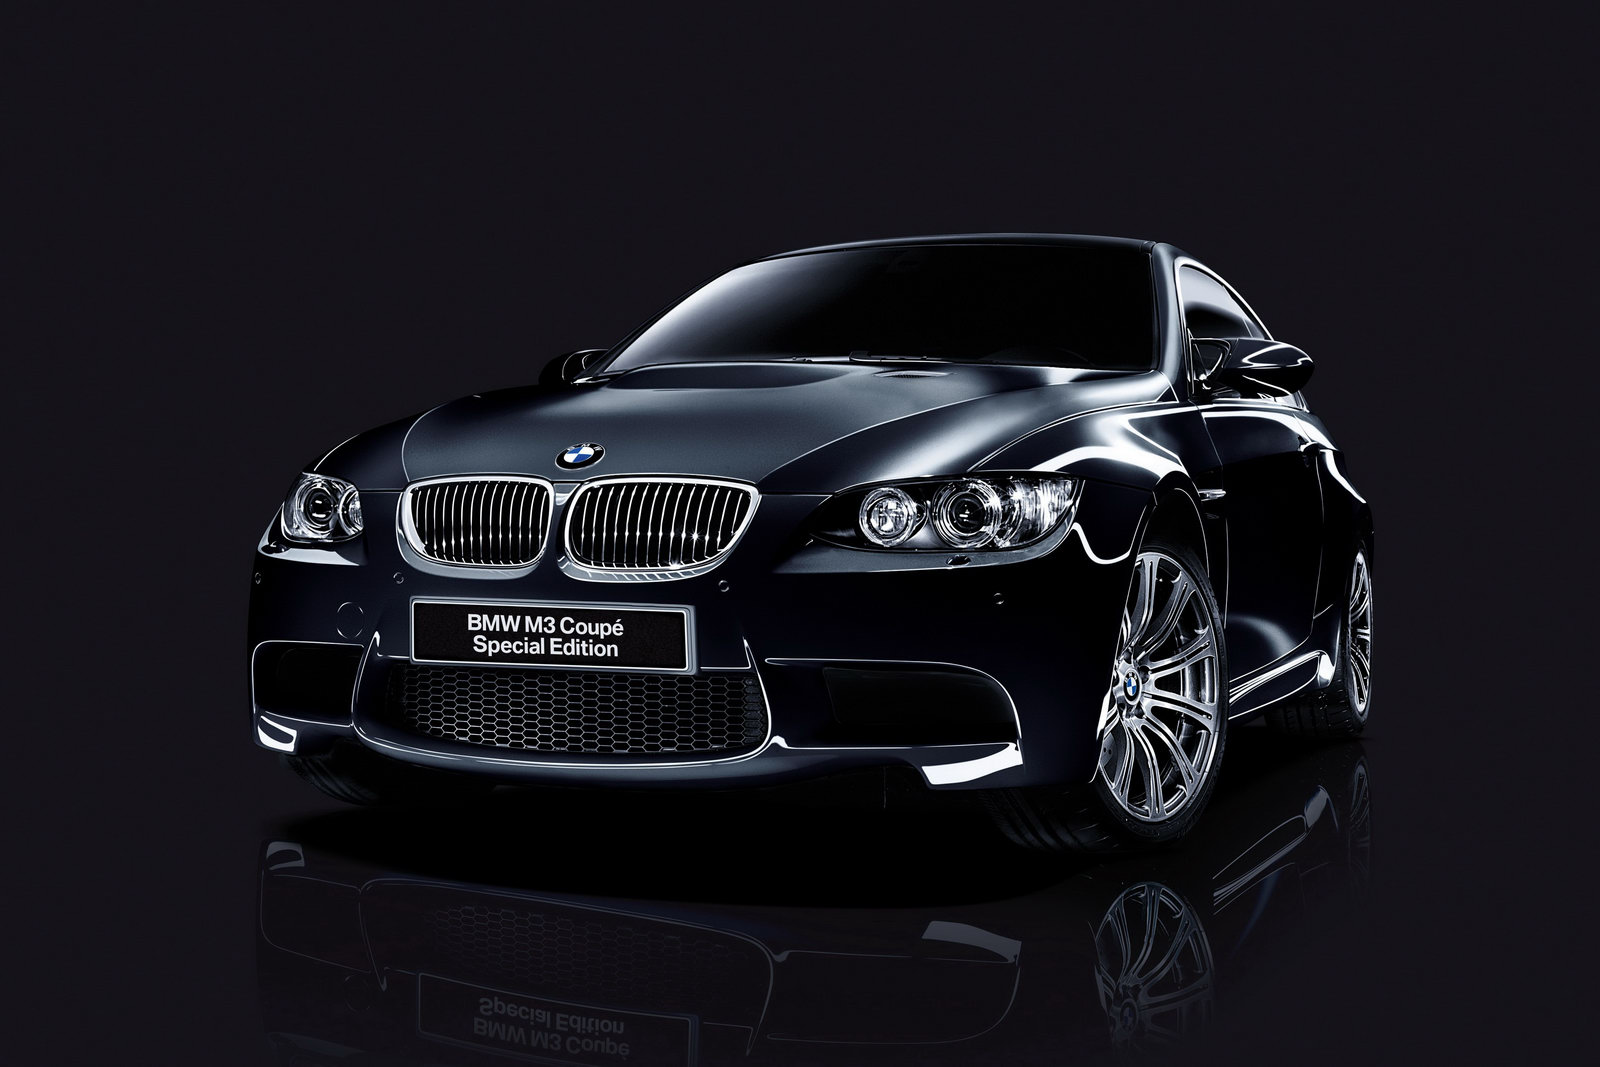 BMW Special Edition M3 Coupe BMW Introduces Special Edition M3 Coupe for Chinese Market